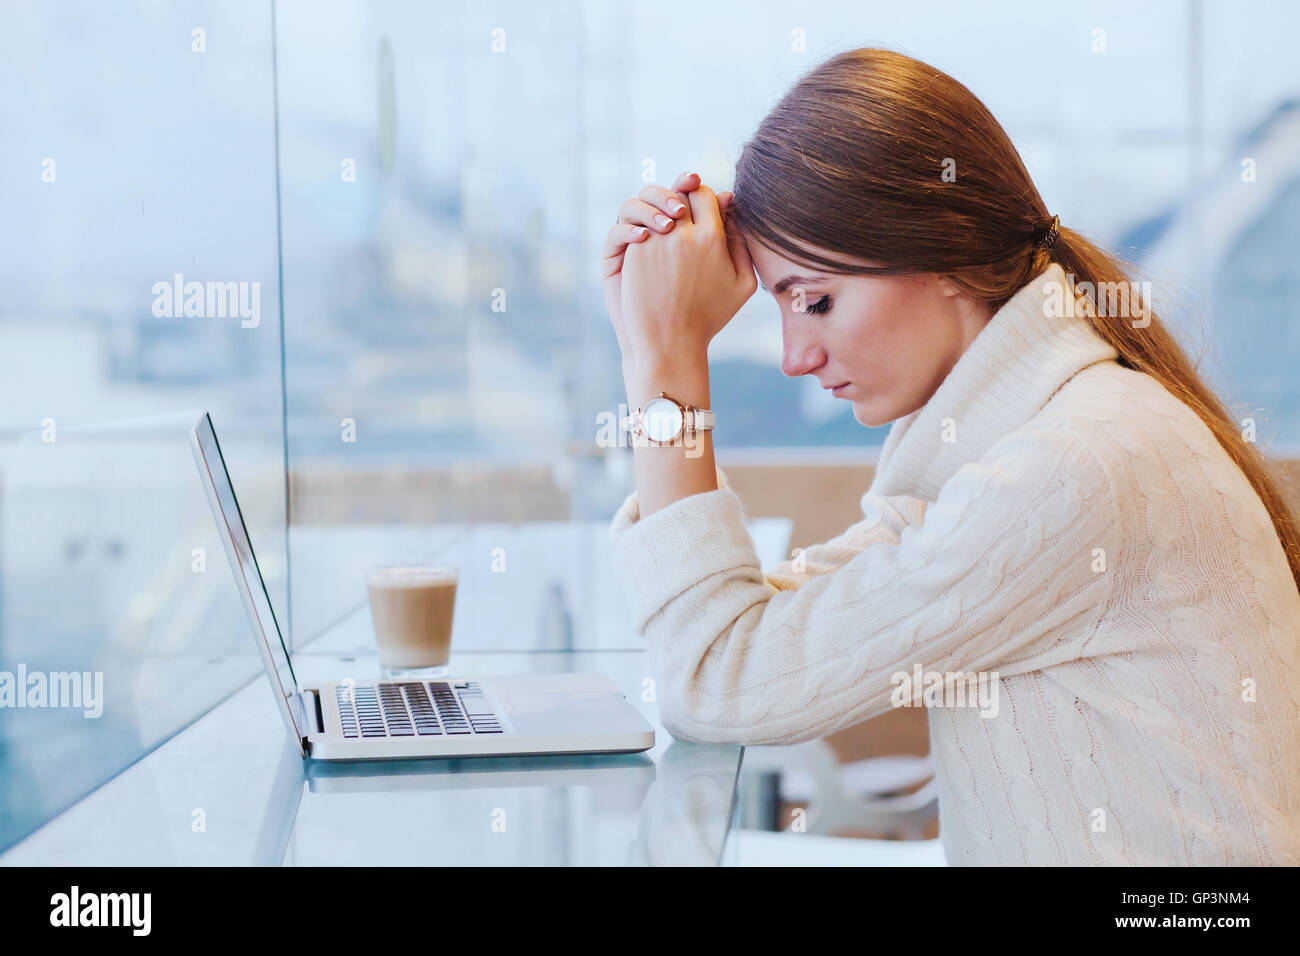 information overload, stress concept, sad desperate woman in front of computer Stock Photo